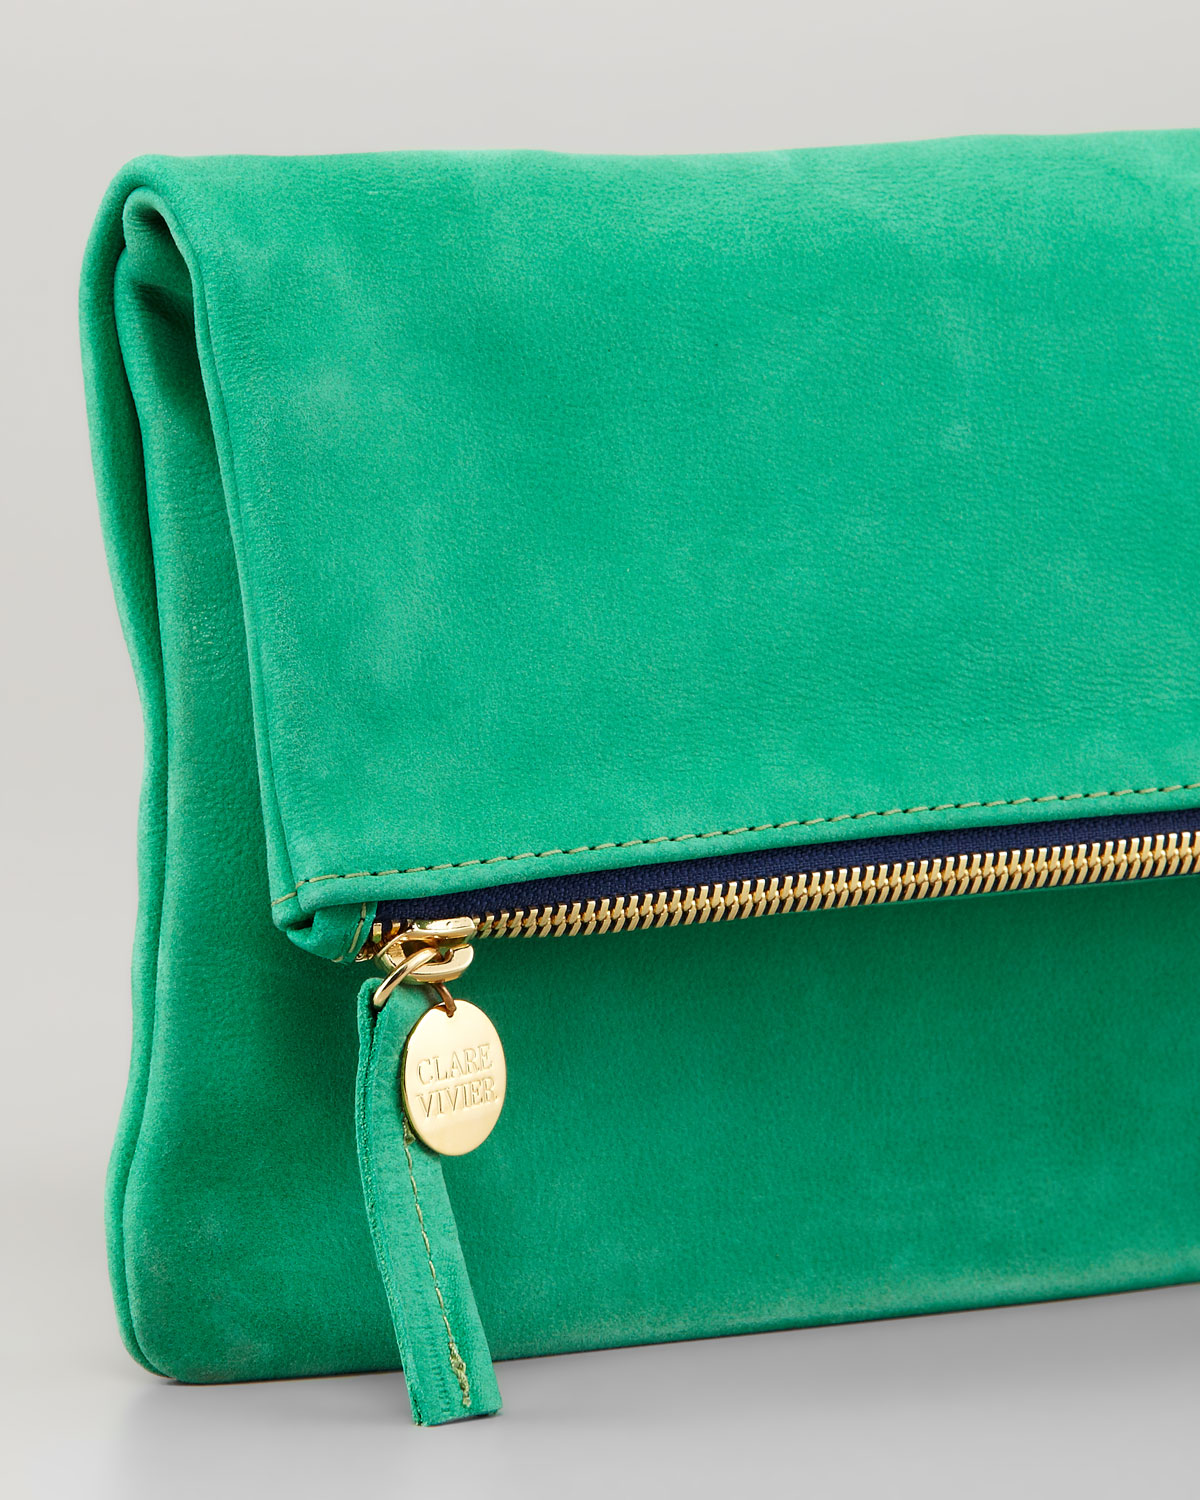 Kelly Green Clutch Purse Best Image Ccdbb